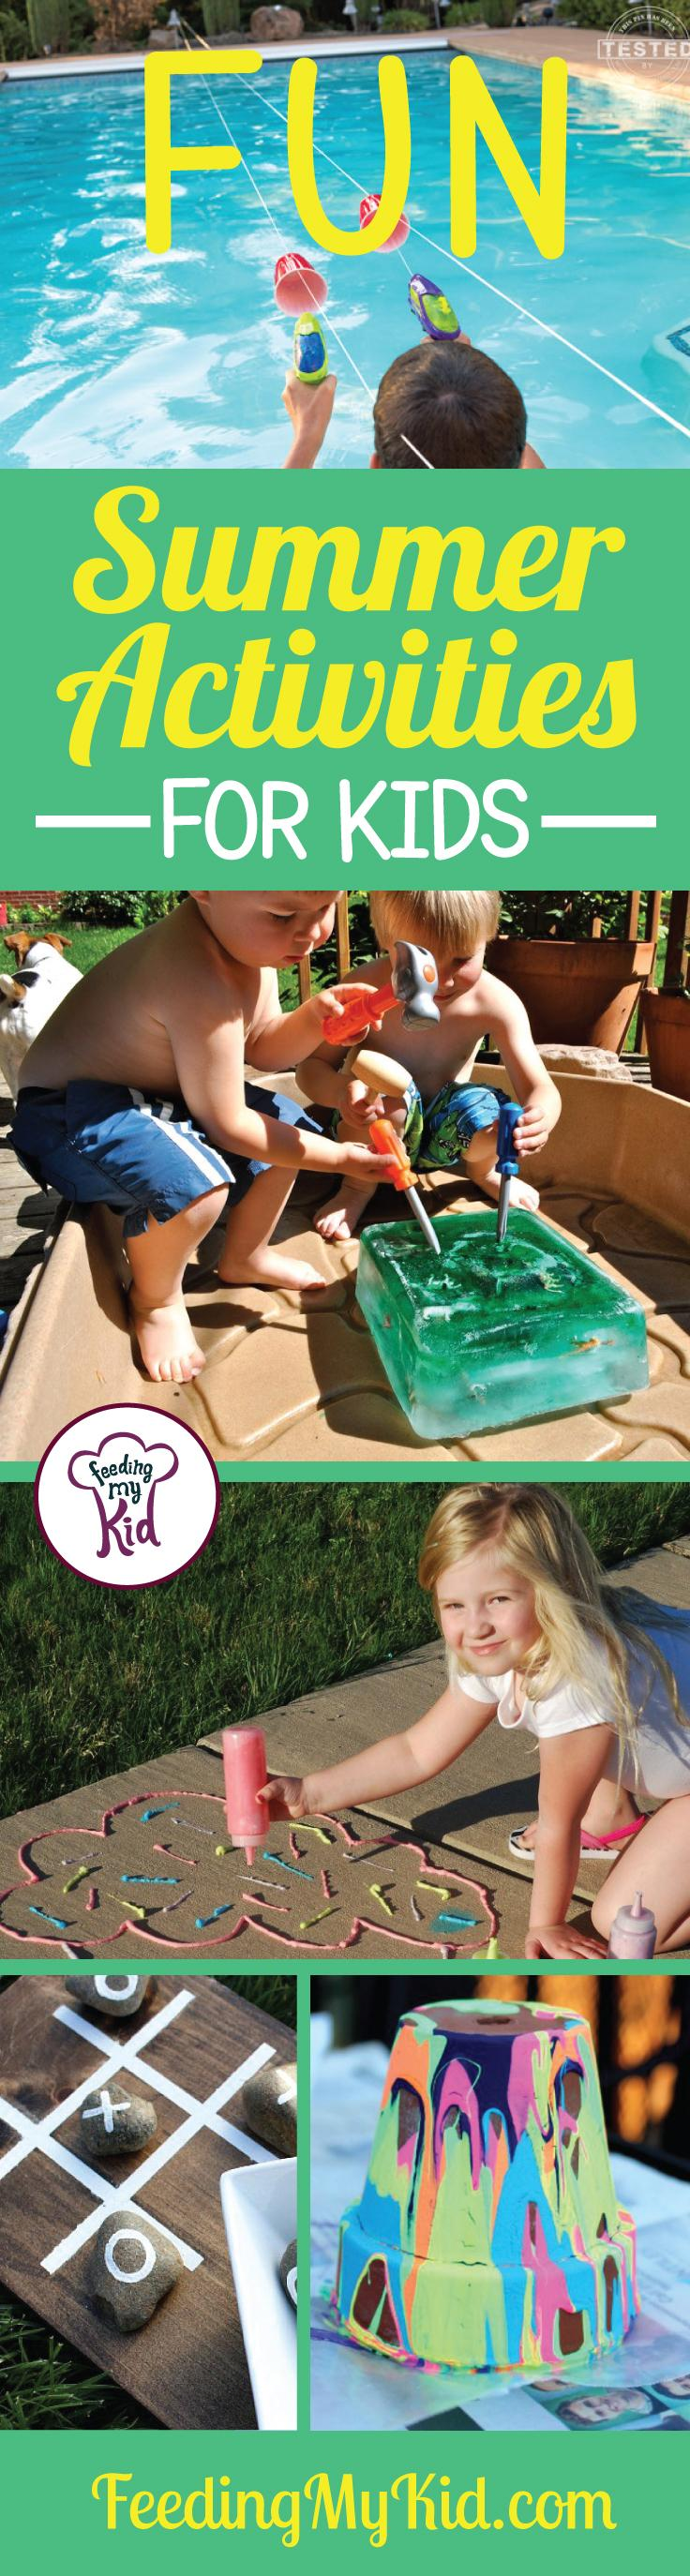 Check out these fun summer activities for kids! They'll make the summer that much more fun! Feeding My Kid is a filled with all the information you need about how to raise your kids, from healthy tips to nutritious recipes.#FeedingMyKid #funactivitiesforkids #summerfun